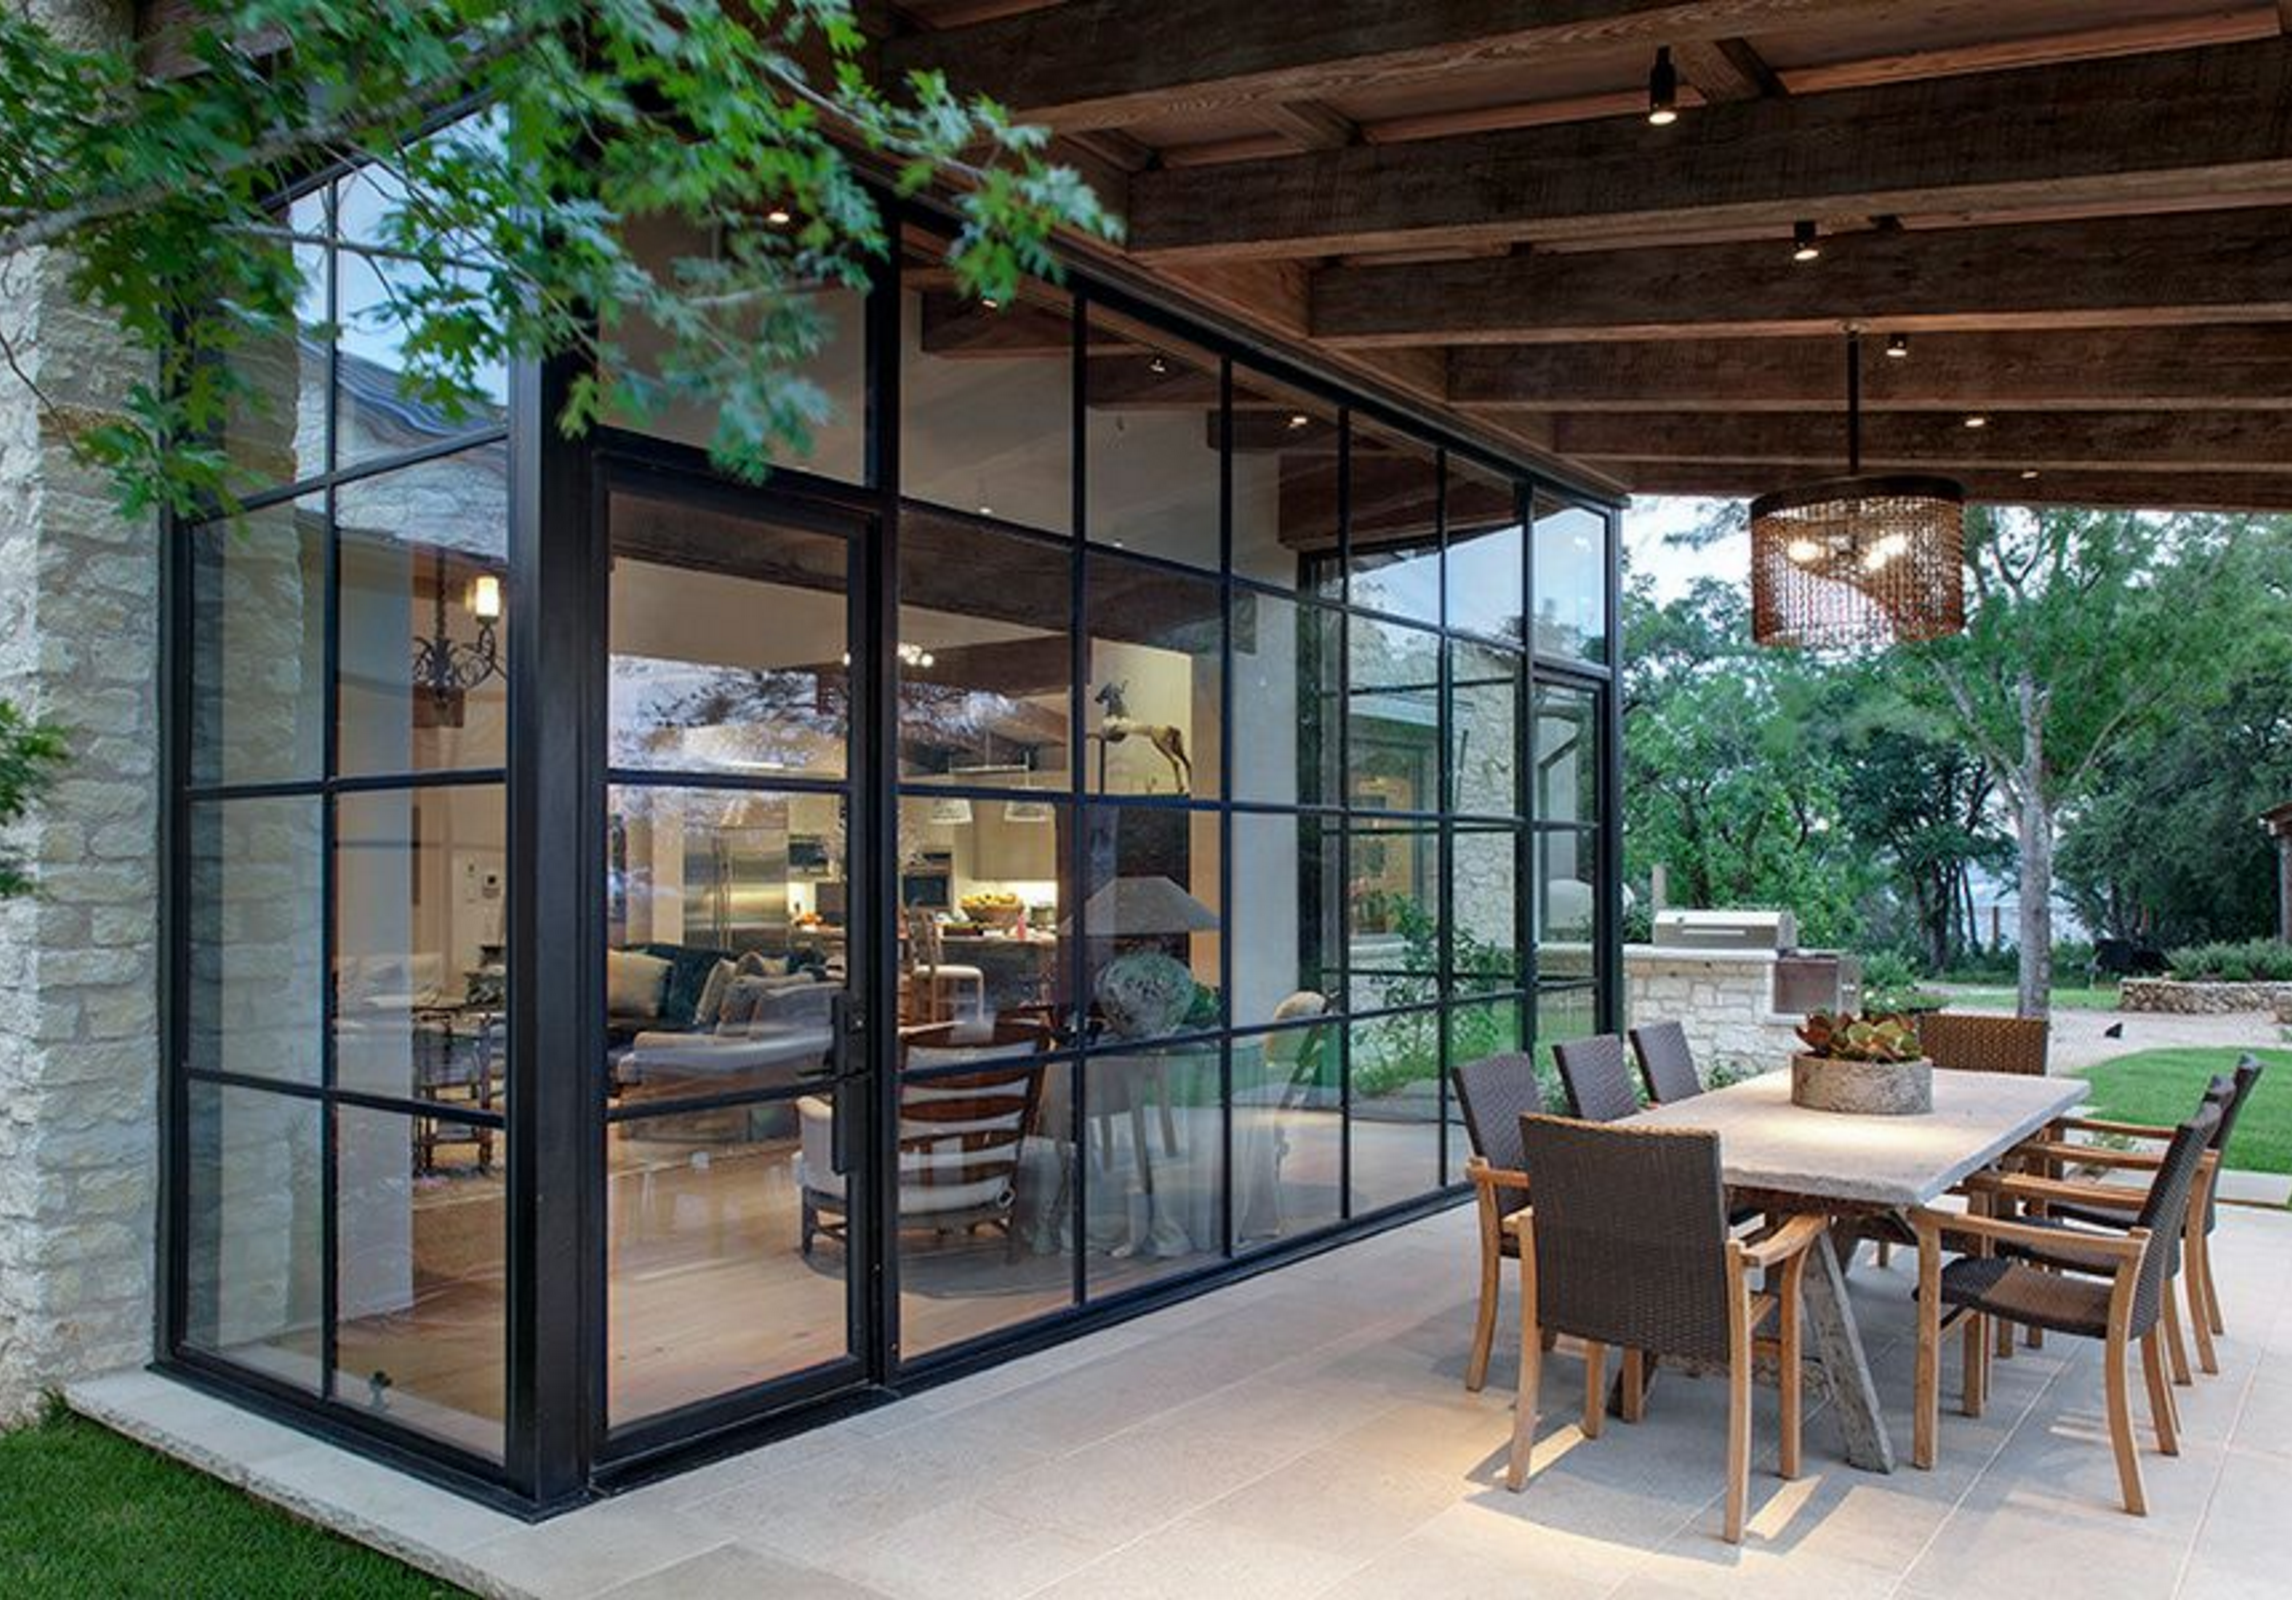 Designed to maximize the use of glass the steel doors and windows in Durango Doors & Designed to maximize the use of glass the steel doors and windows ... pezcame.com